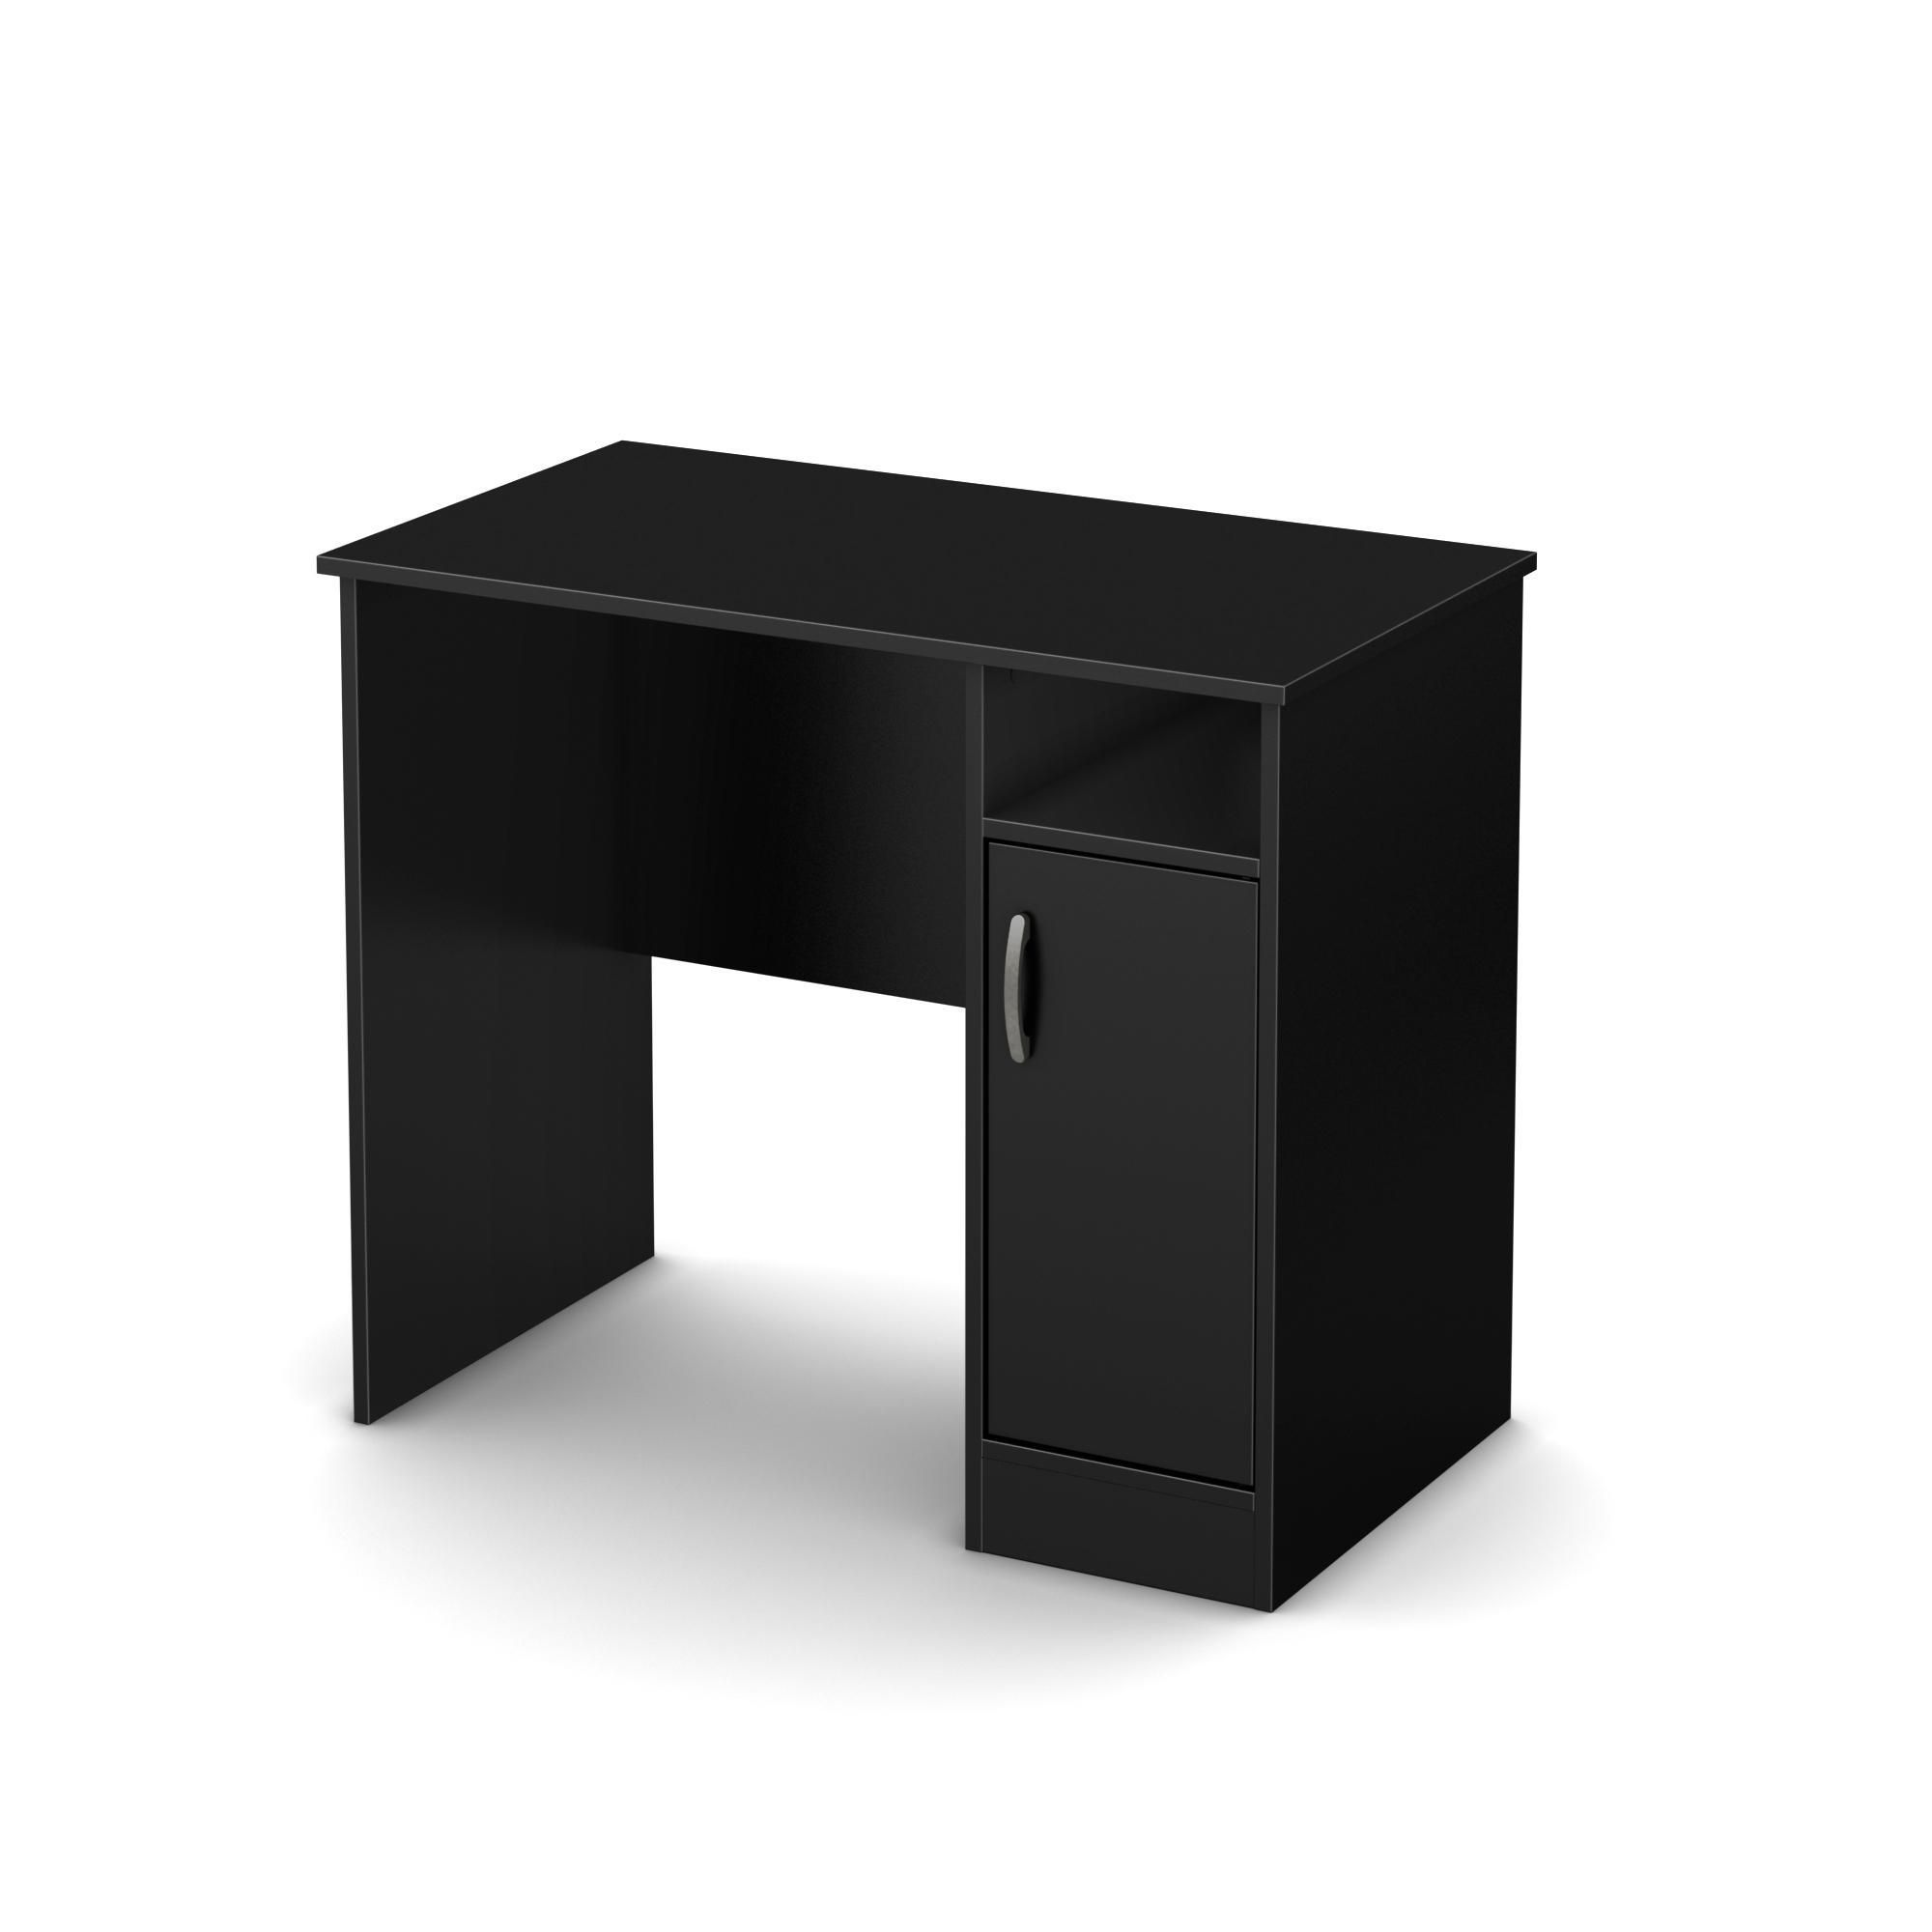 simple small home black axess furniture design pure the desk shore white stores south